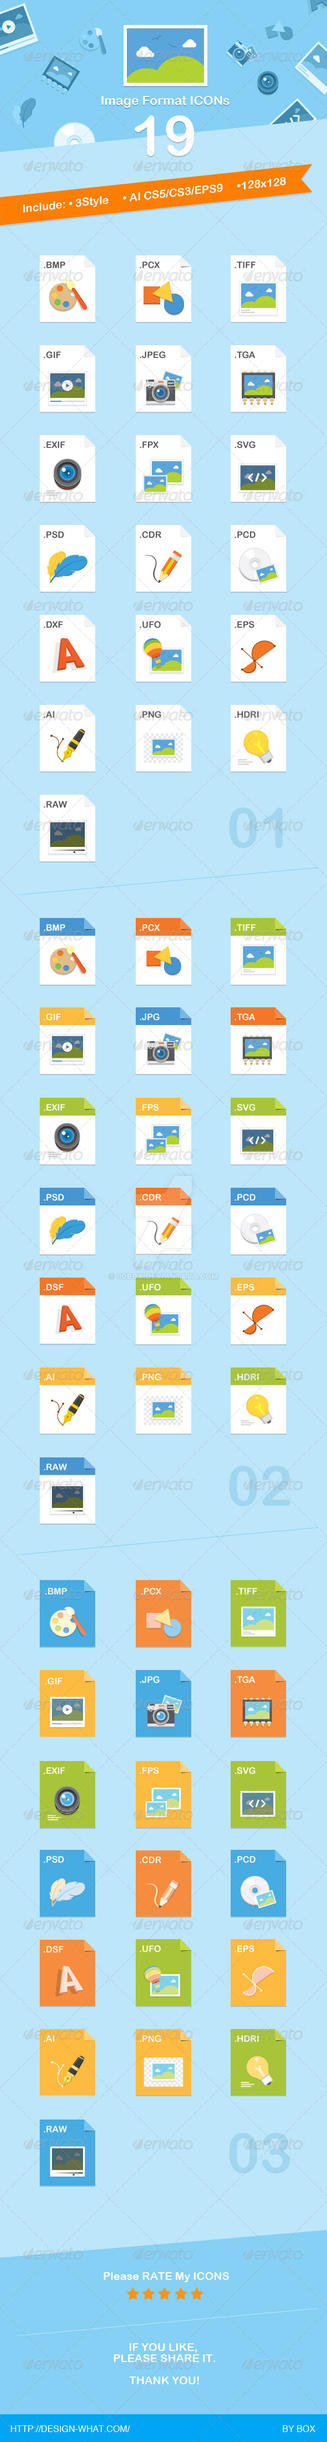 19 Image Format Icons by 90Box